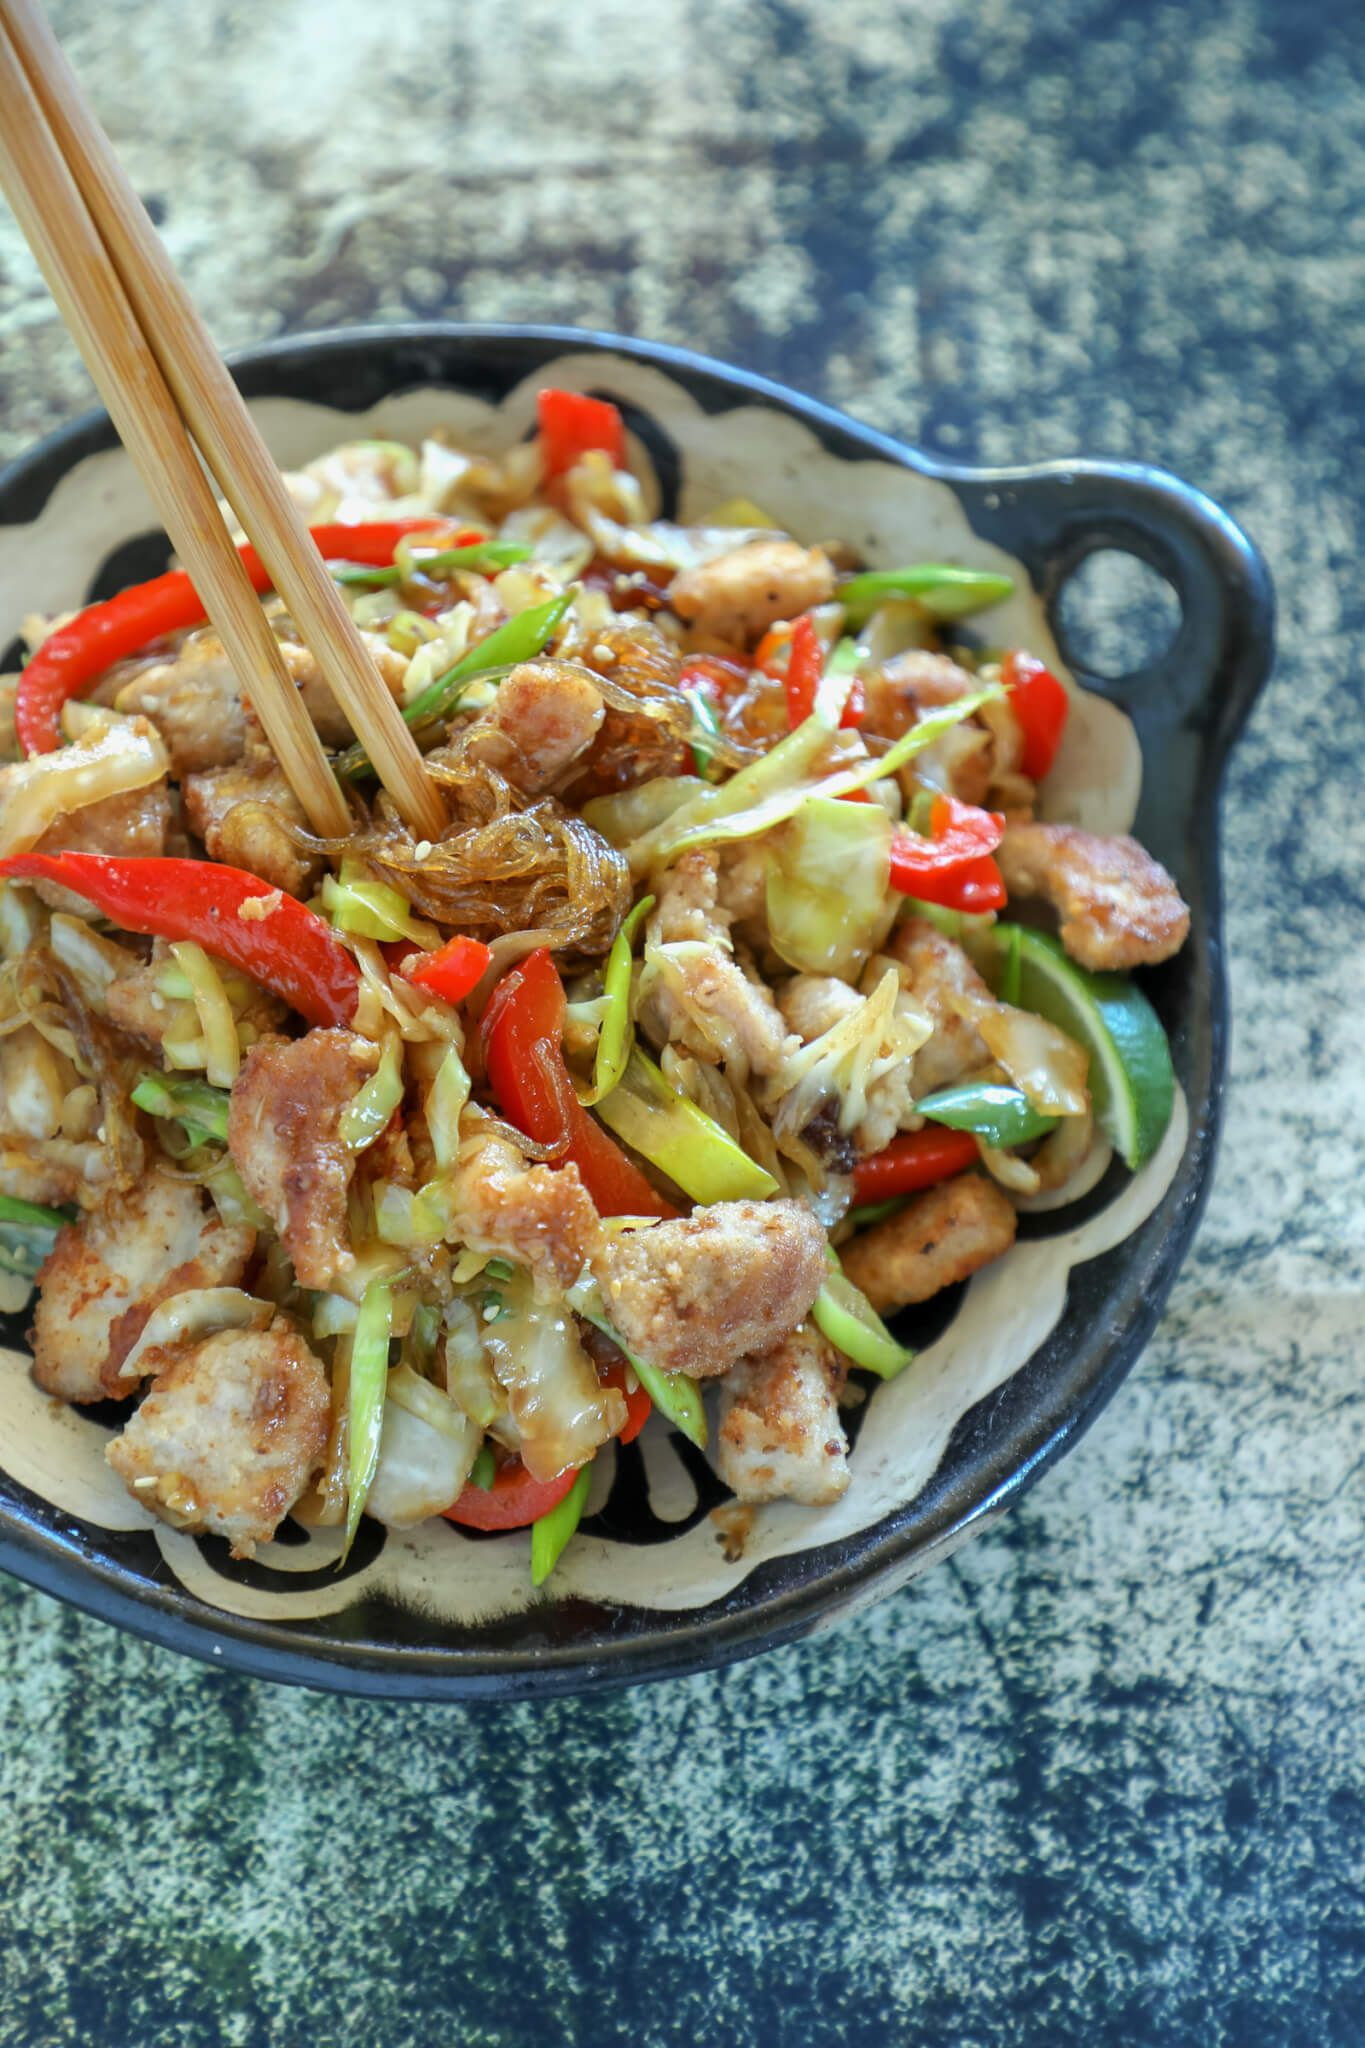 Keto Crispy Pork & Noodle Stir Fry - Low Carb